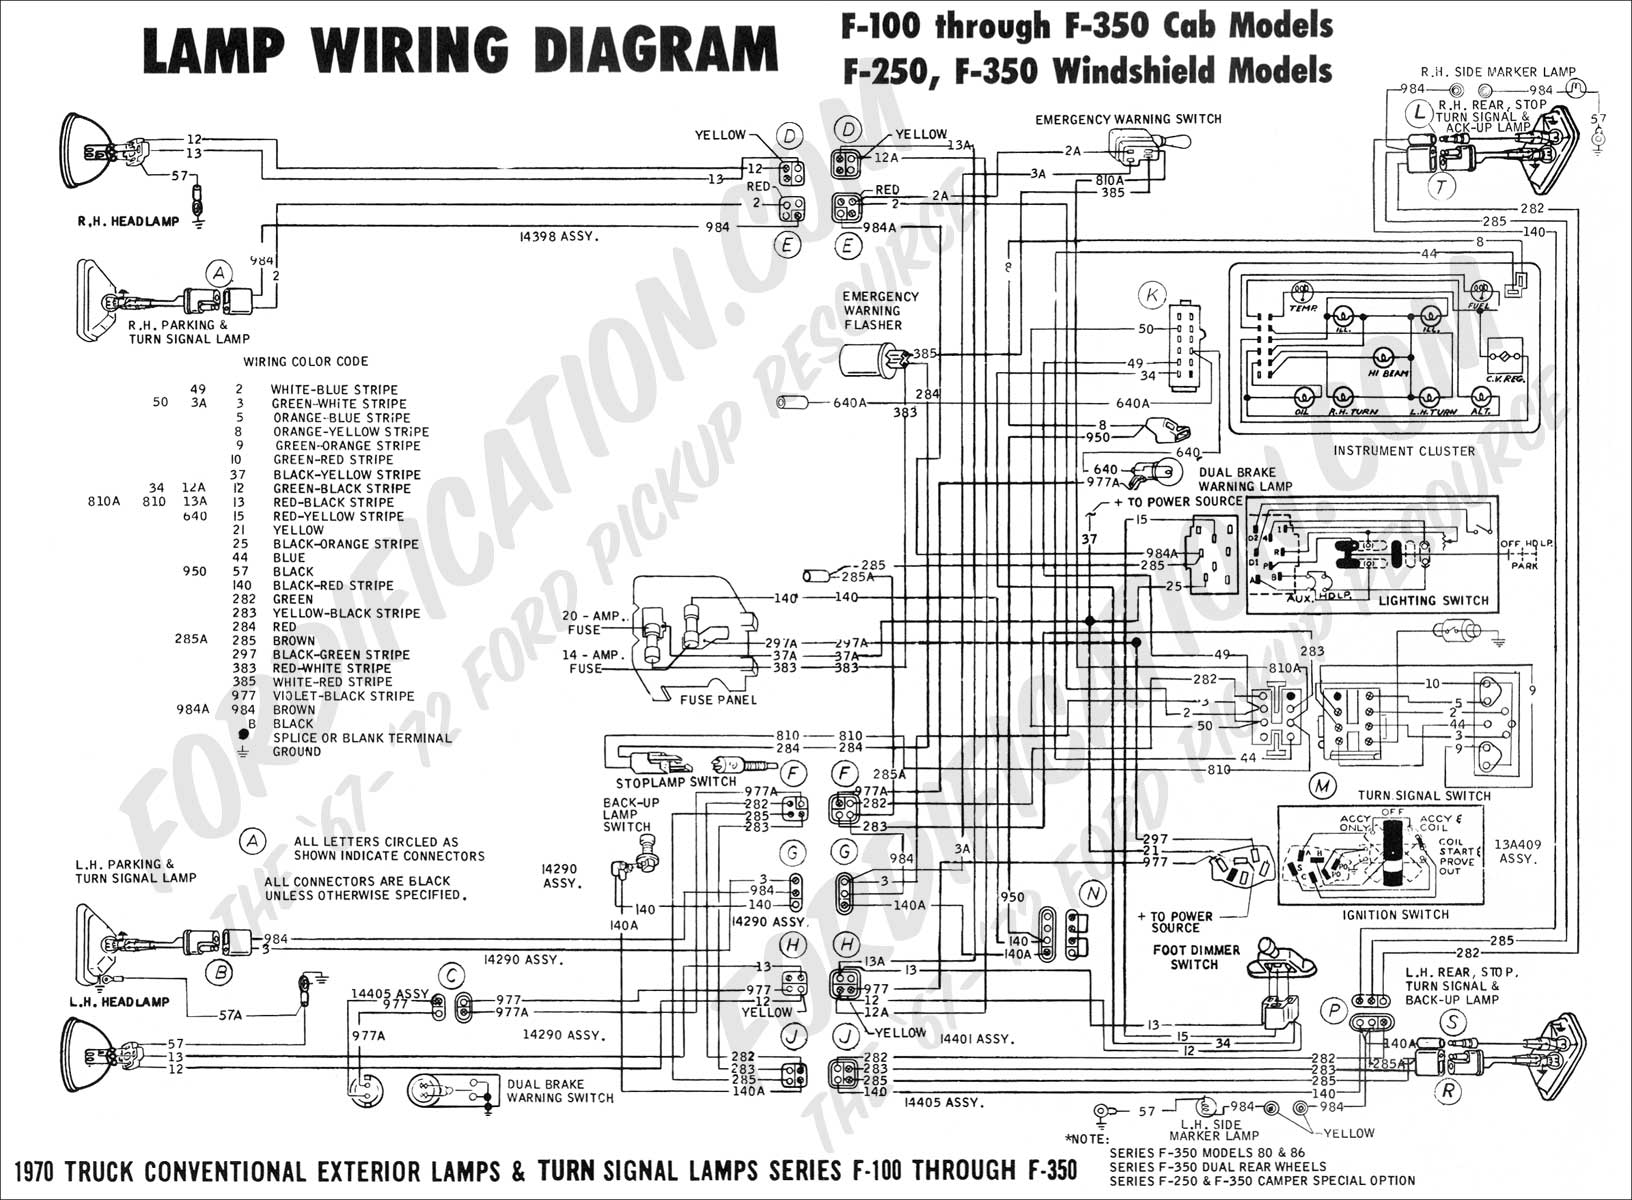 ford f700 wiring diagram 1969 1992 ford f700 wiring diagram ford truck technical drawings and schematics - section h ... #9